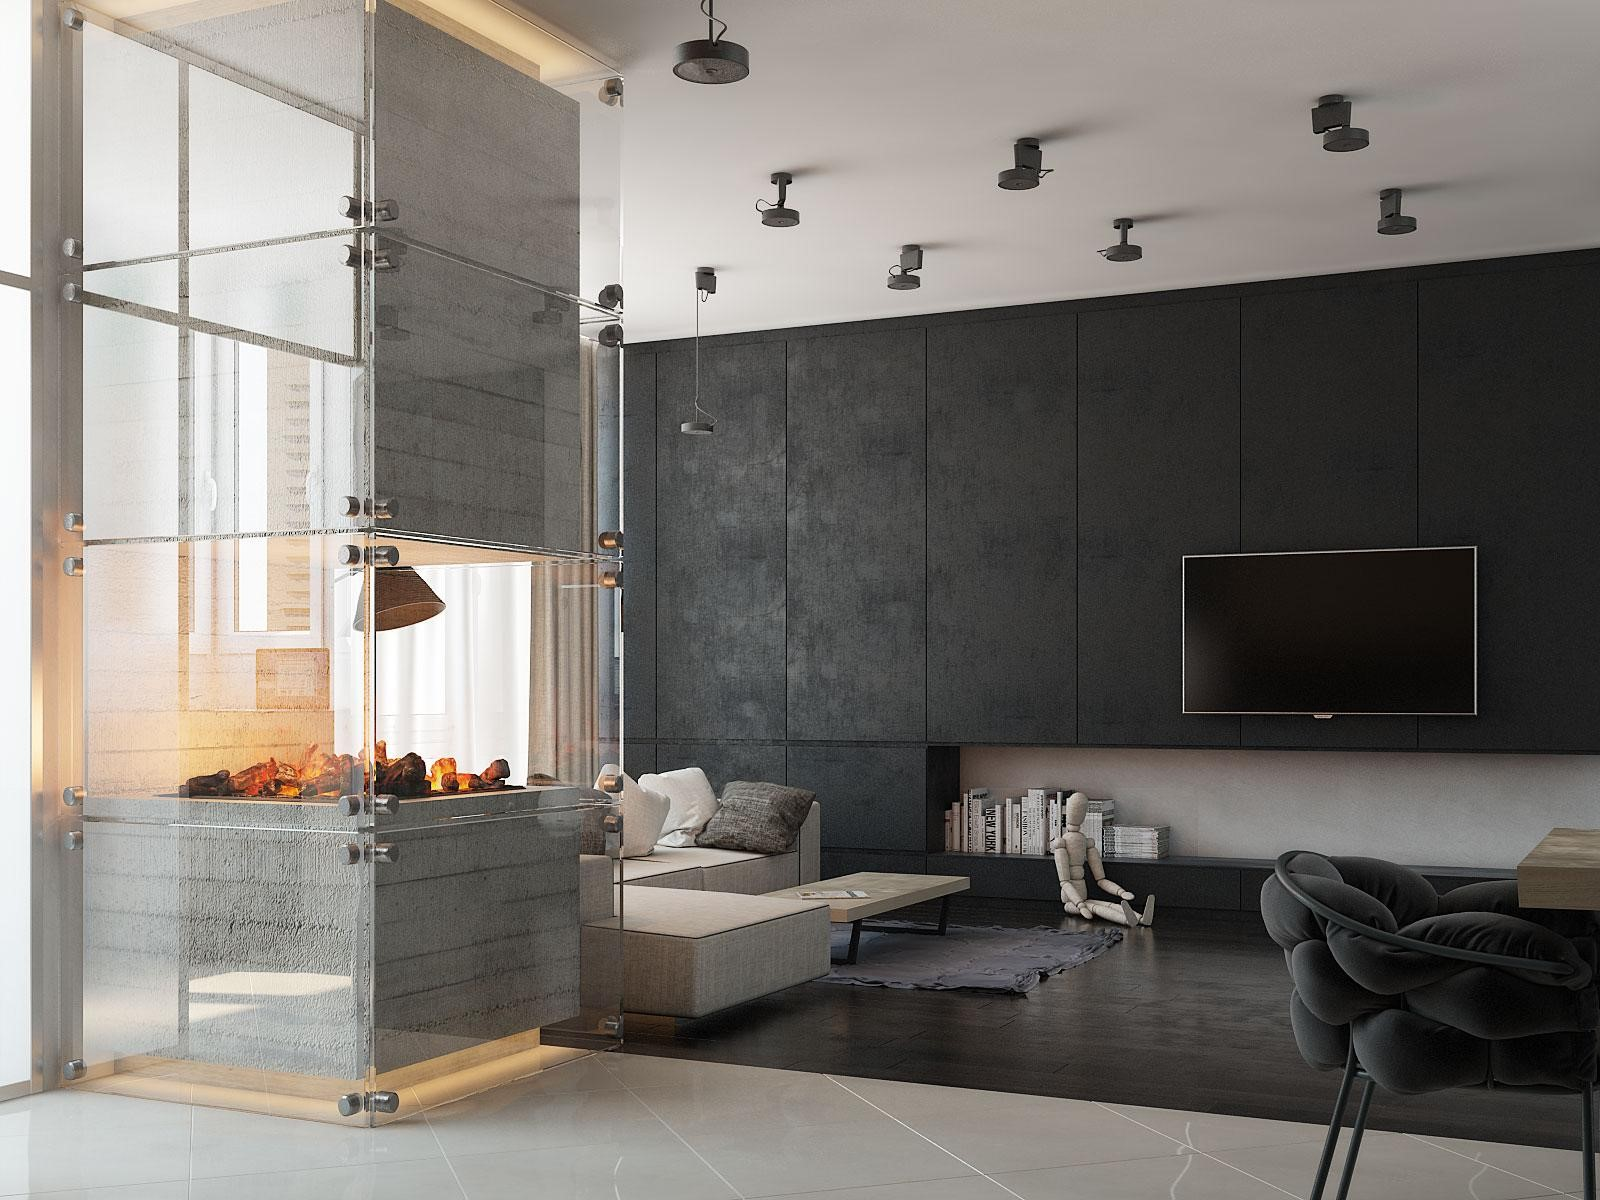 All-the-modern-style-homes-information-you-should-know-4